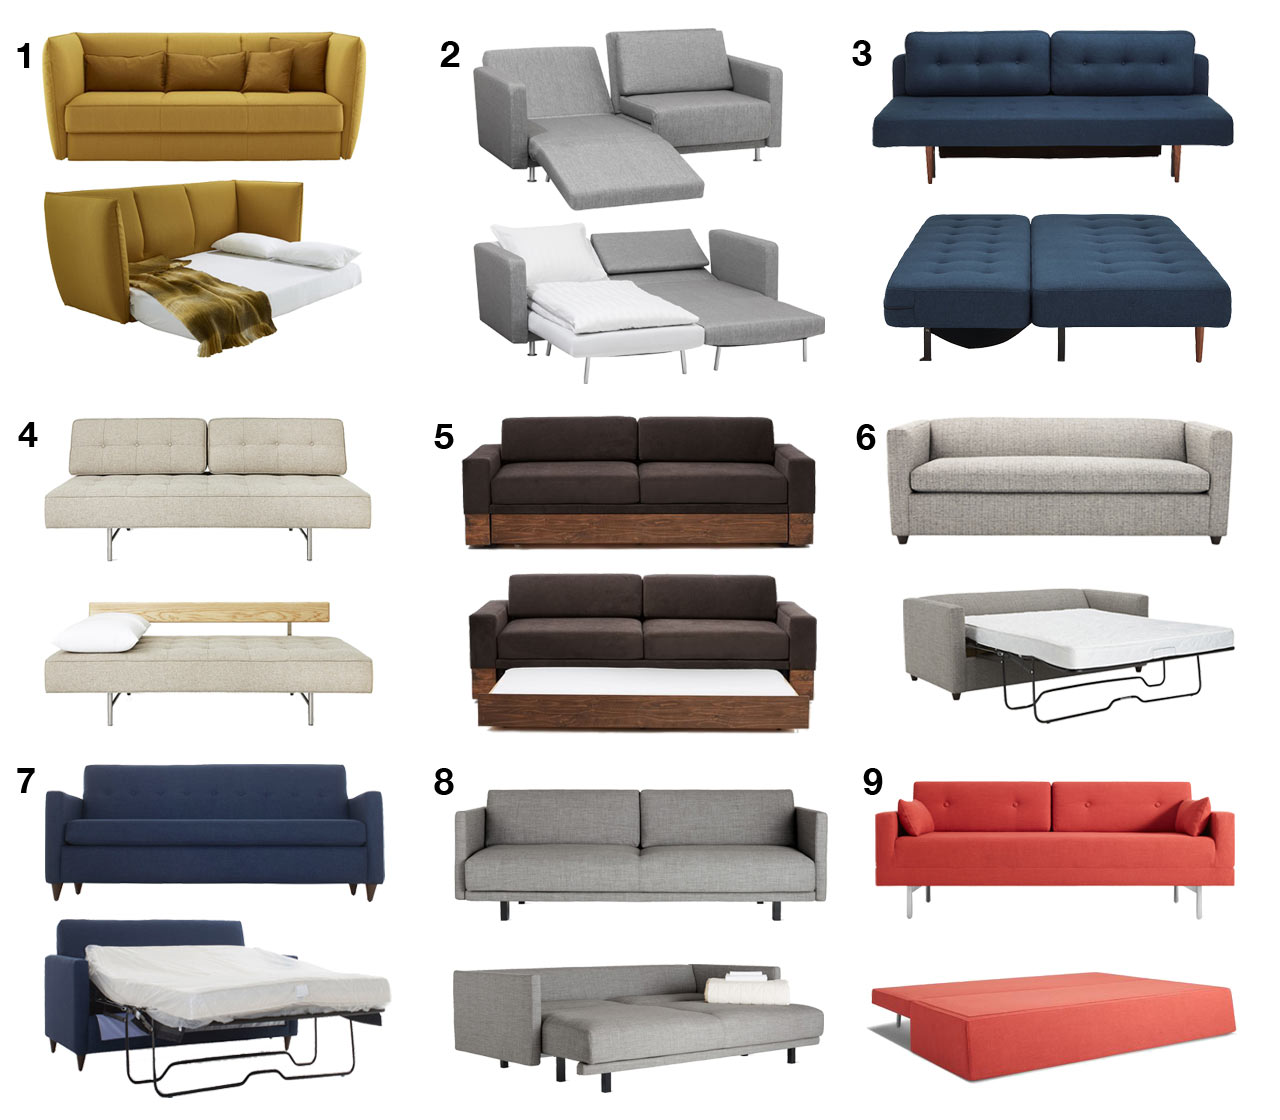 Modern sofa beds and sleeper sofas your guests wont hate to sleep on